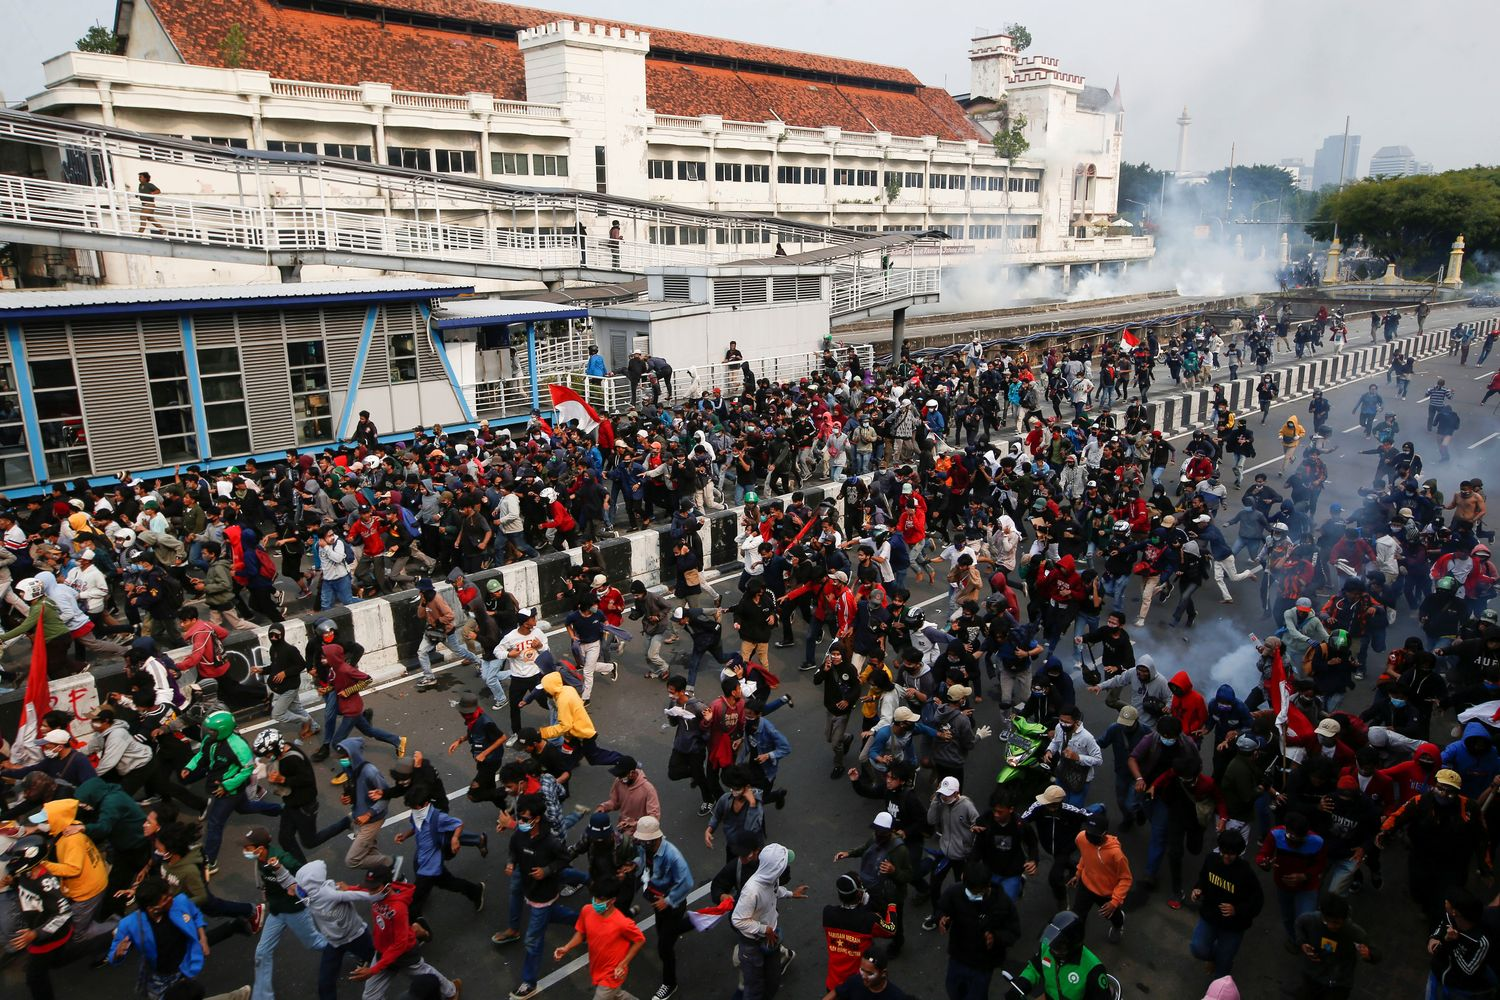 Indonesians protest labor reforms in a new